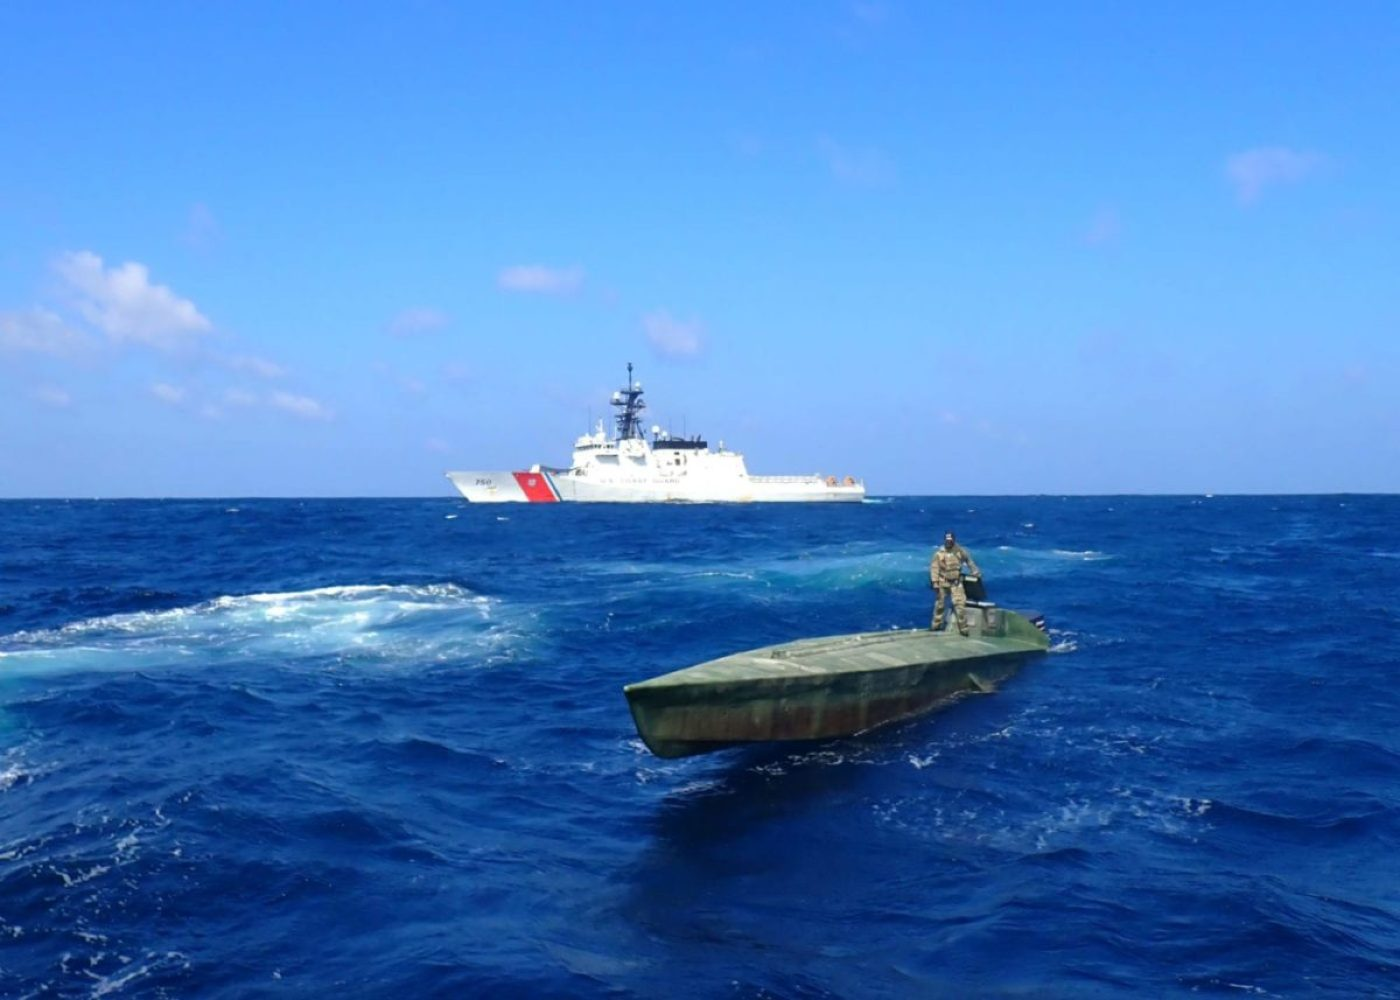 A Coast Guard Cutter Bertholf (WMSL 750) boarding team member stands atop an interdicted low-profile vessel in the Eastern Pacific Ocean, Feb. 1, 2021. Cartels design low-profile vessels specifically to evade law enforcement and to ferry large quantities of illicit contraband while riding low in the water. U.S. Coast Guard photo courtesy of the Coast Guard Cutter Bertholf.